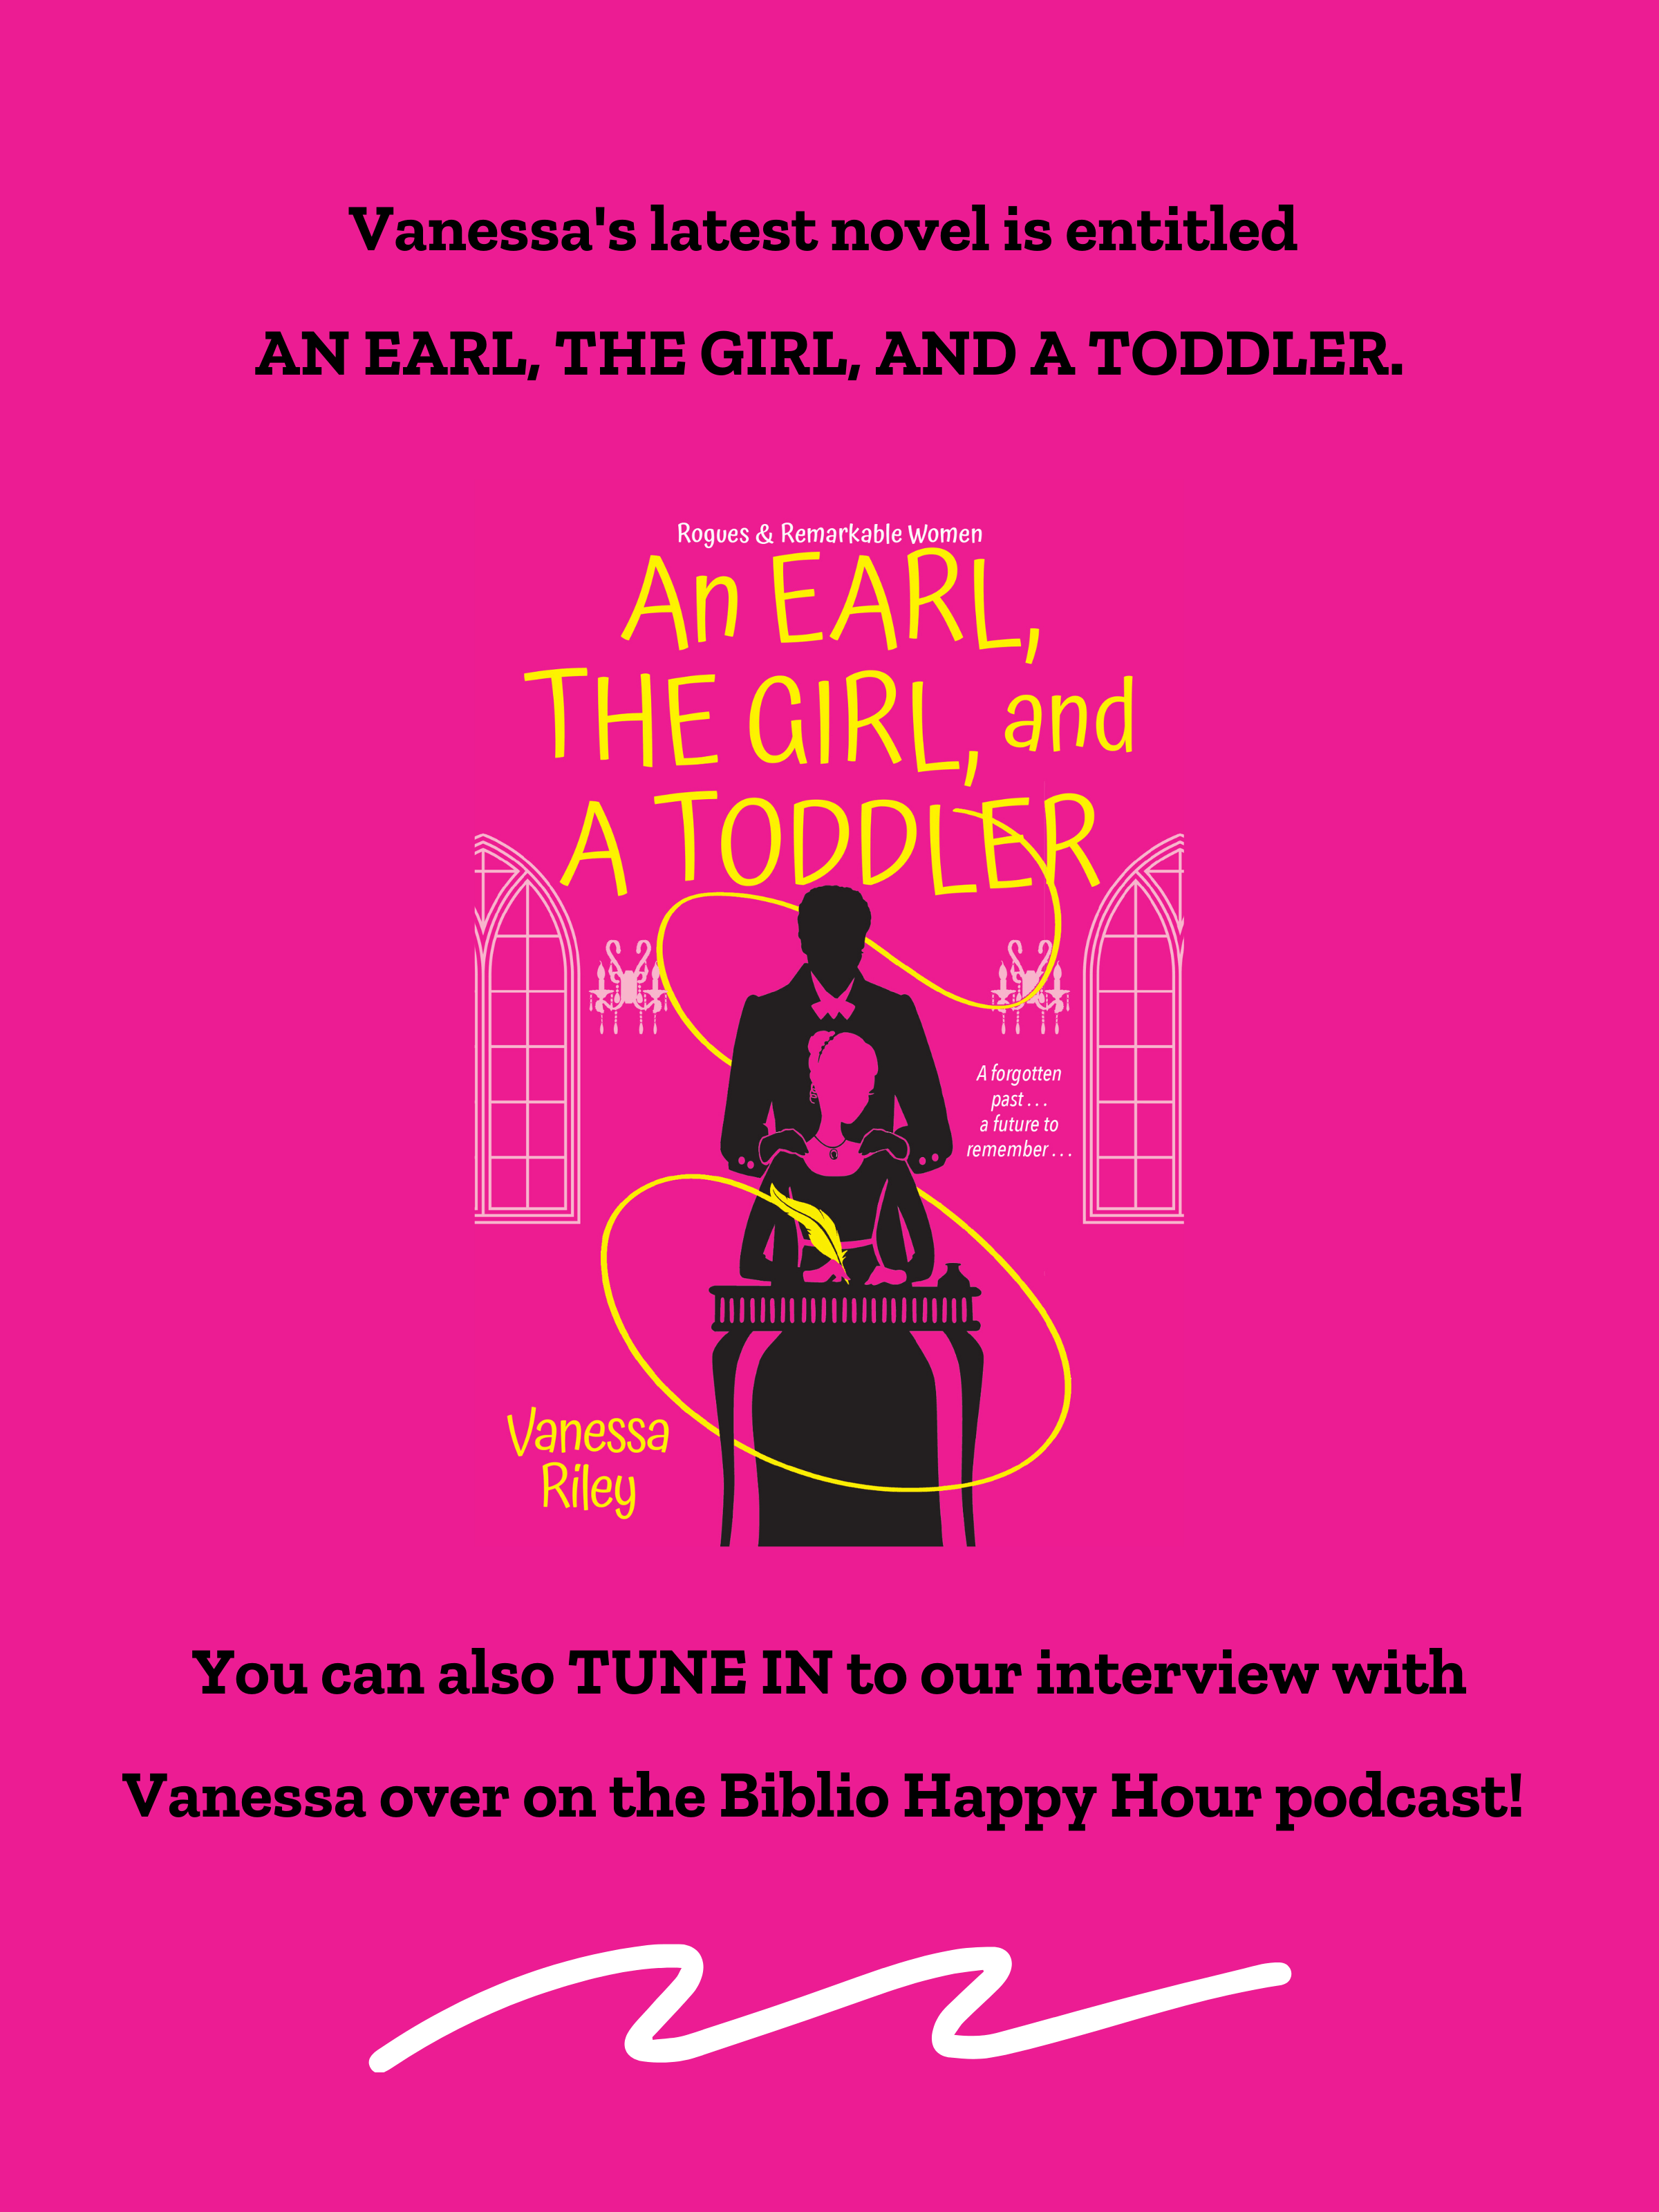 An Earl, the Girl and a Toddler by Vanessa Riley